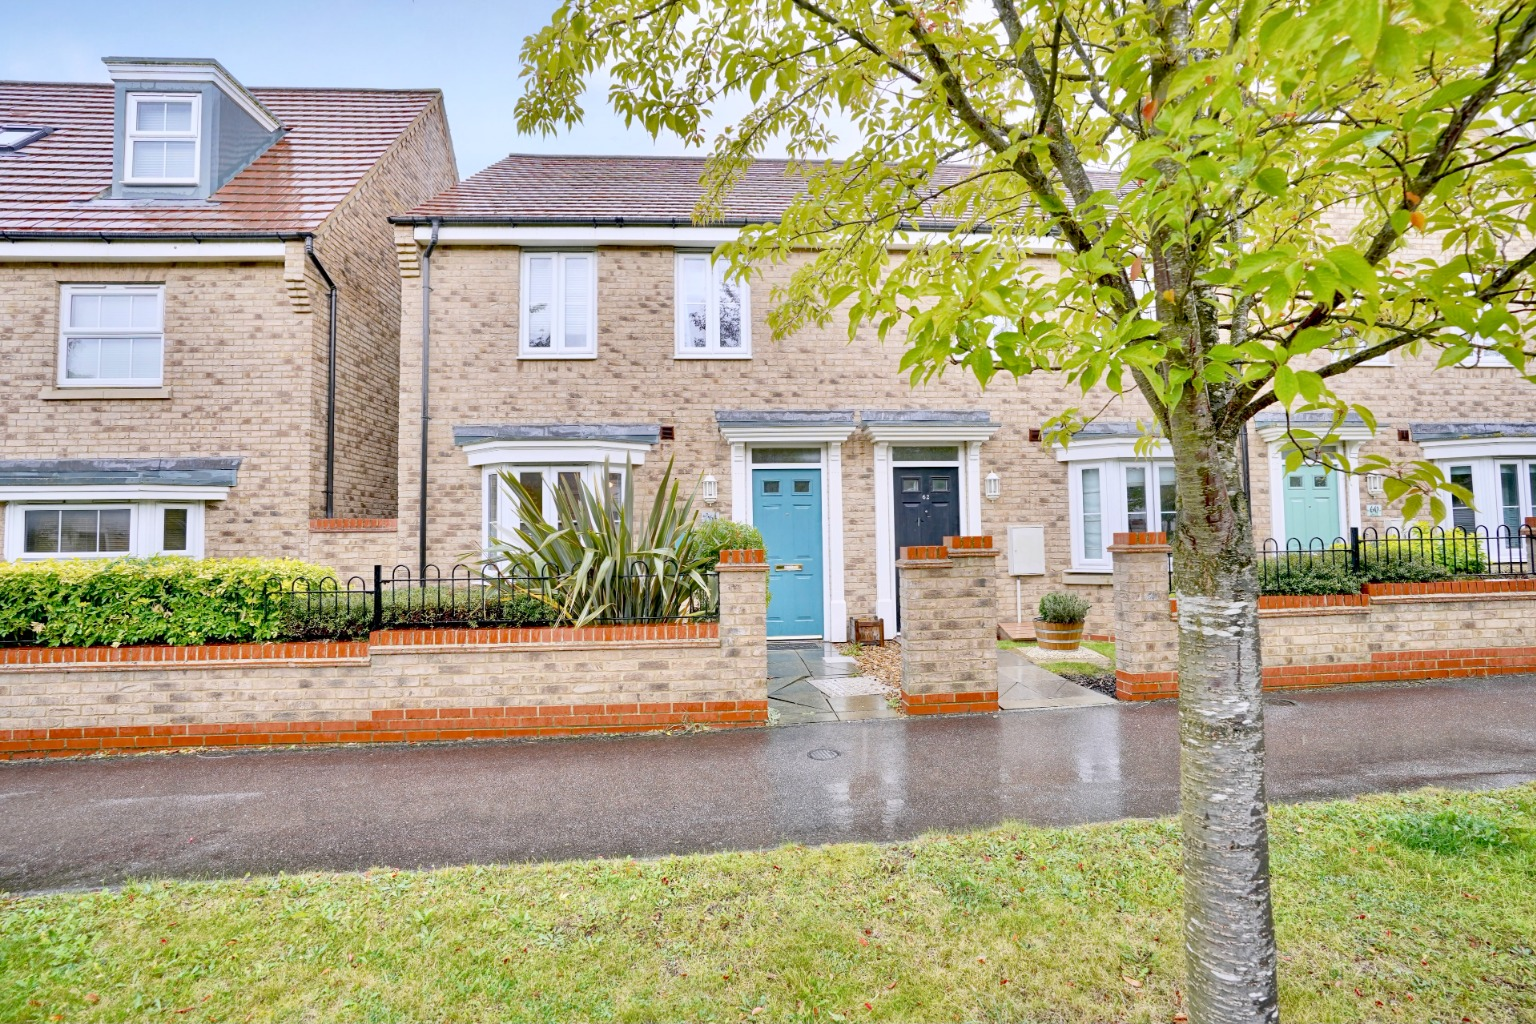 3 bed end of terrace house for sale in Stone Hill, Cambridgeshire  - Property Image 11